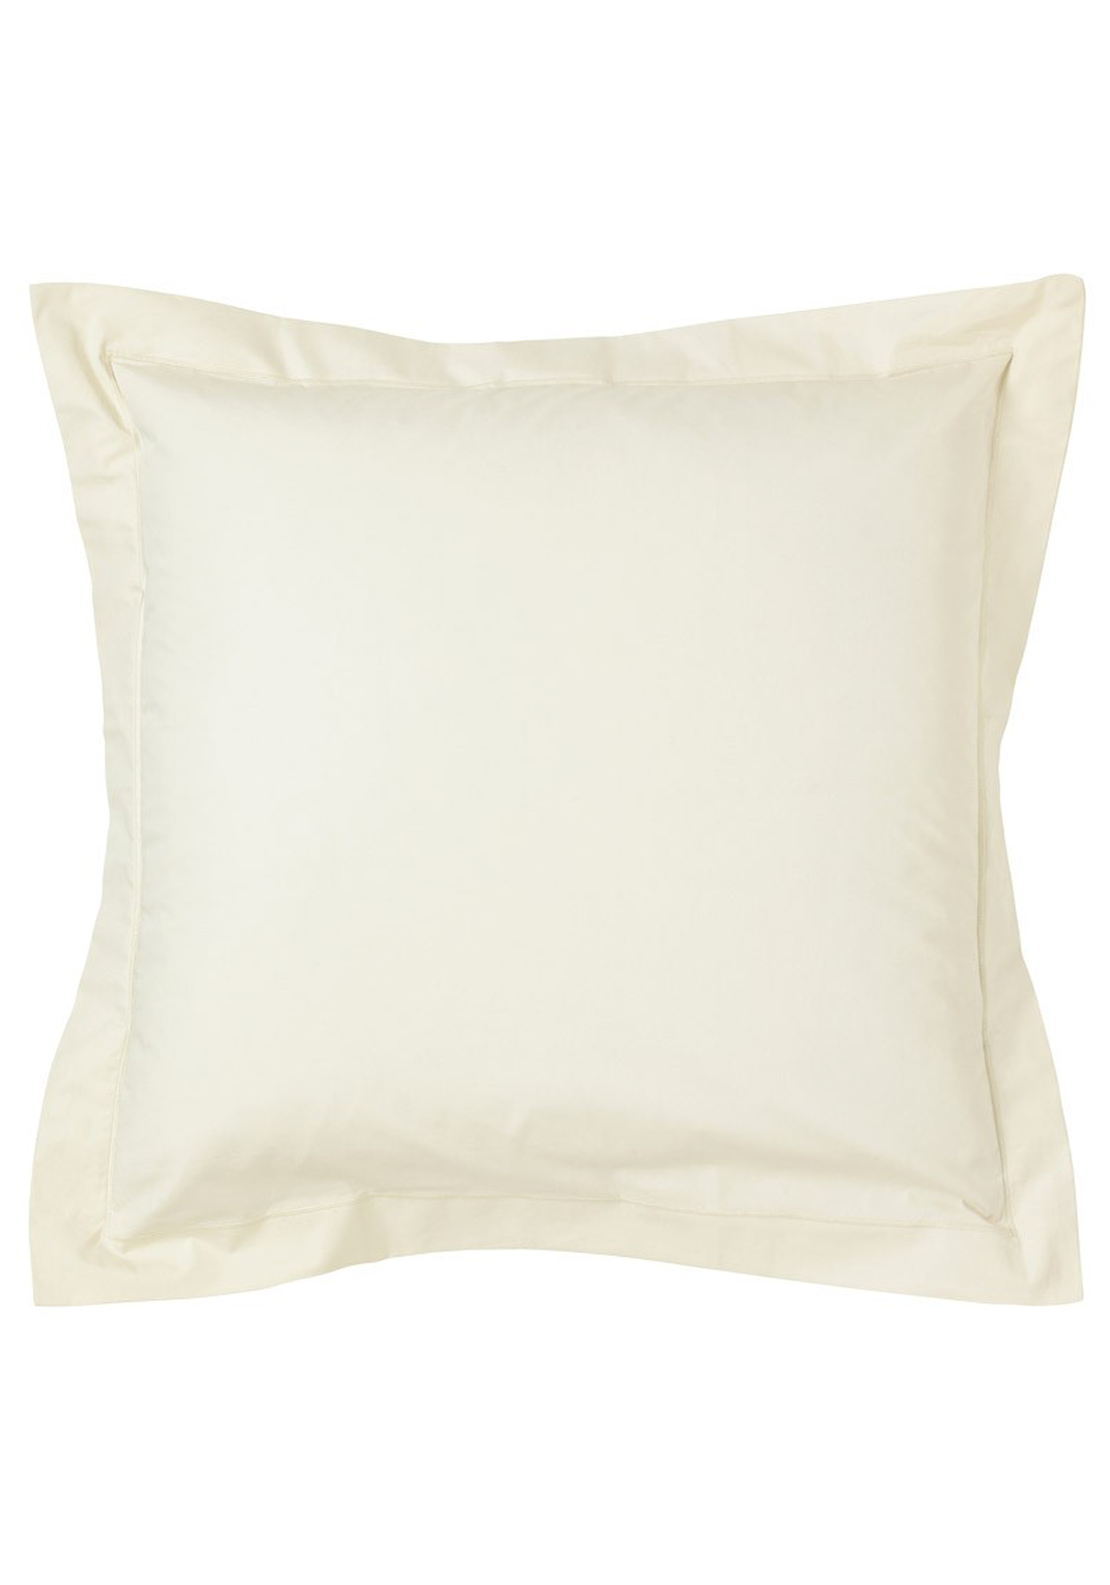 Fable Plain Dye Housewife Pillowcase, Linen